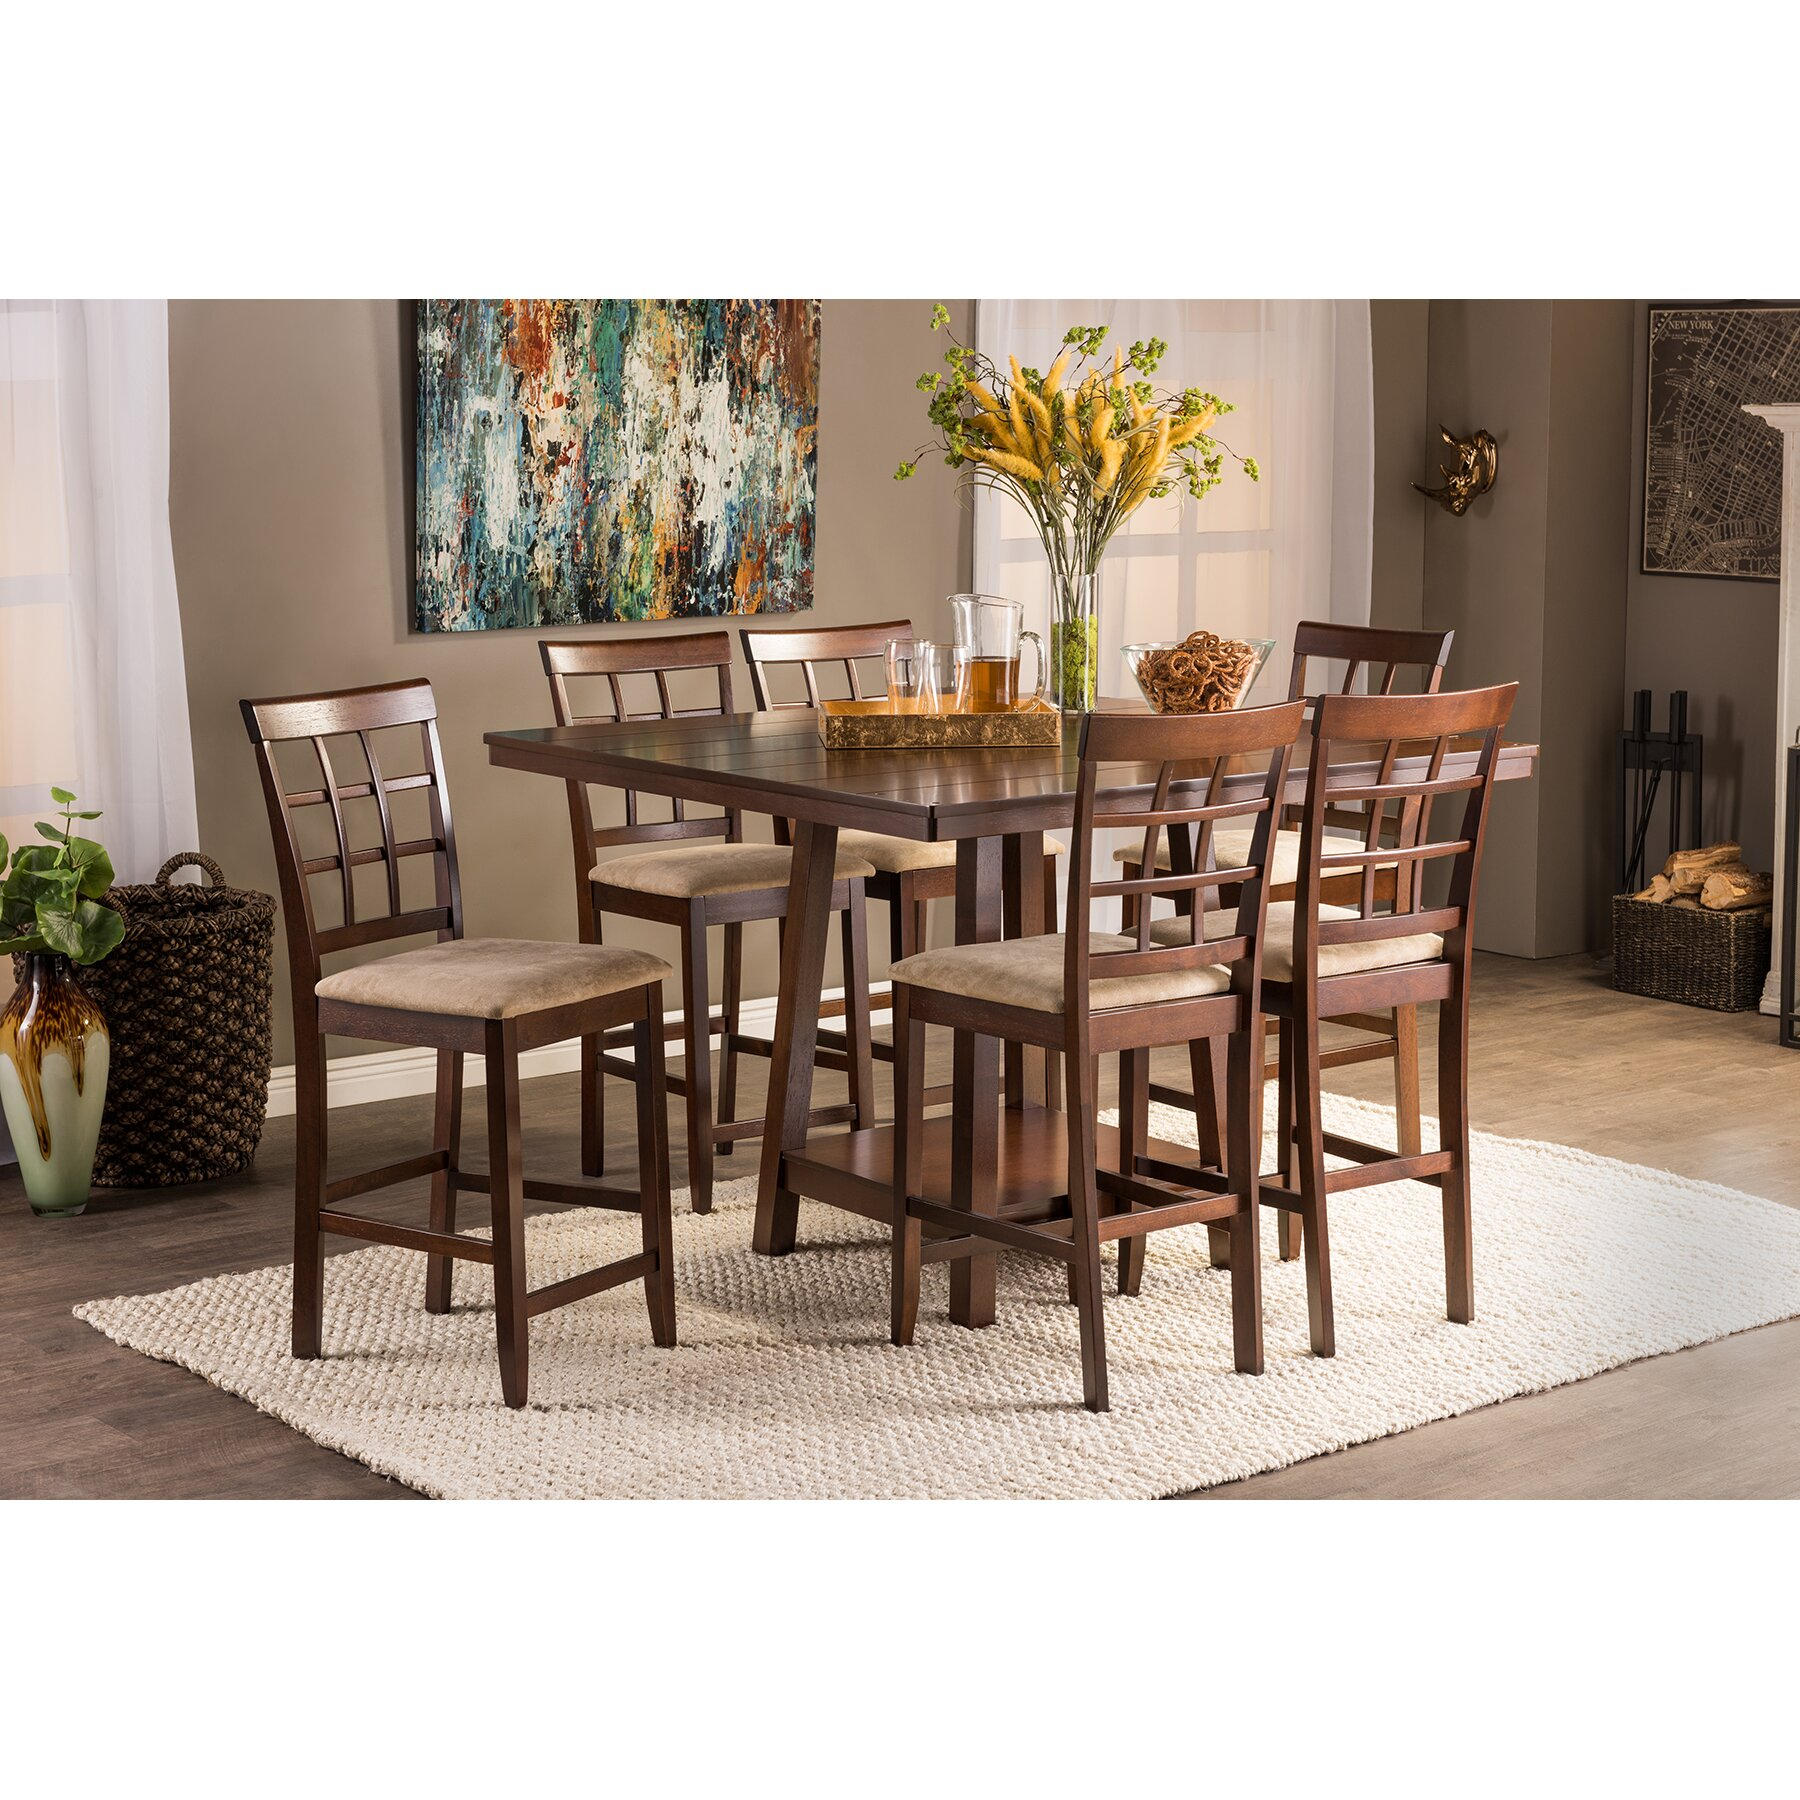 7 Piece Counter Height Dining Room Sets: Wholesale Interiors Baxton Studio Katelyn 7 Piece Counter